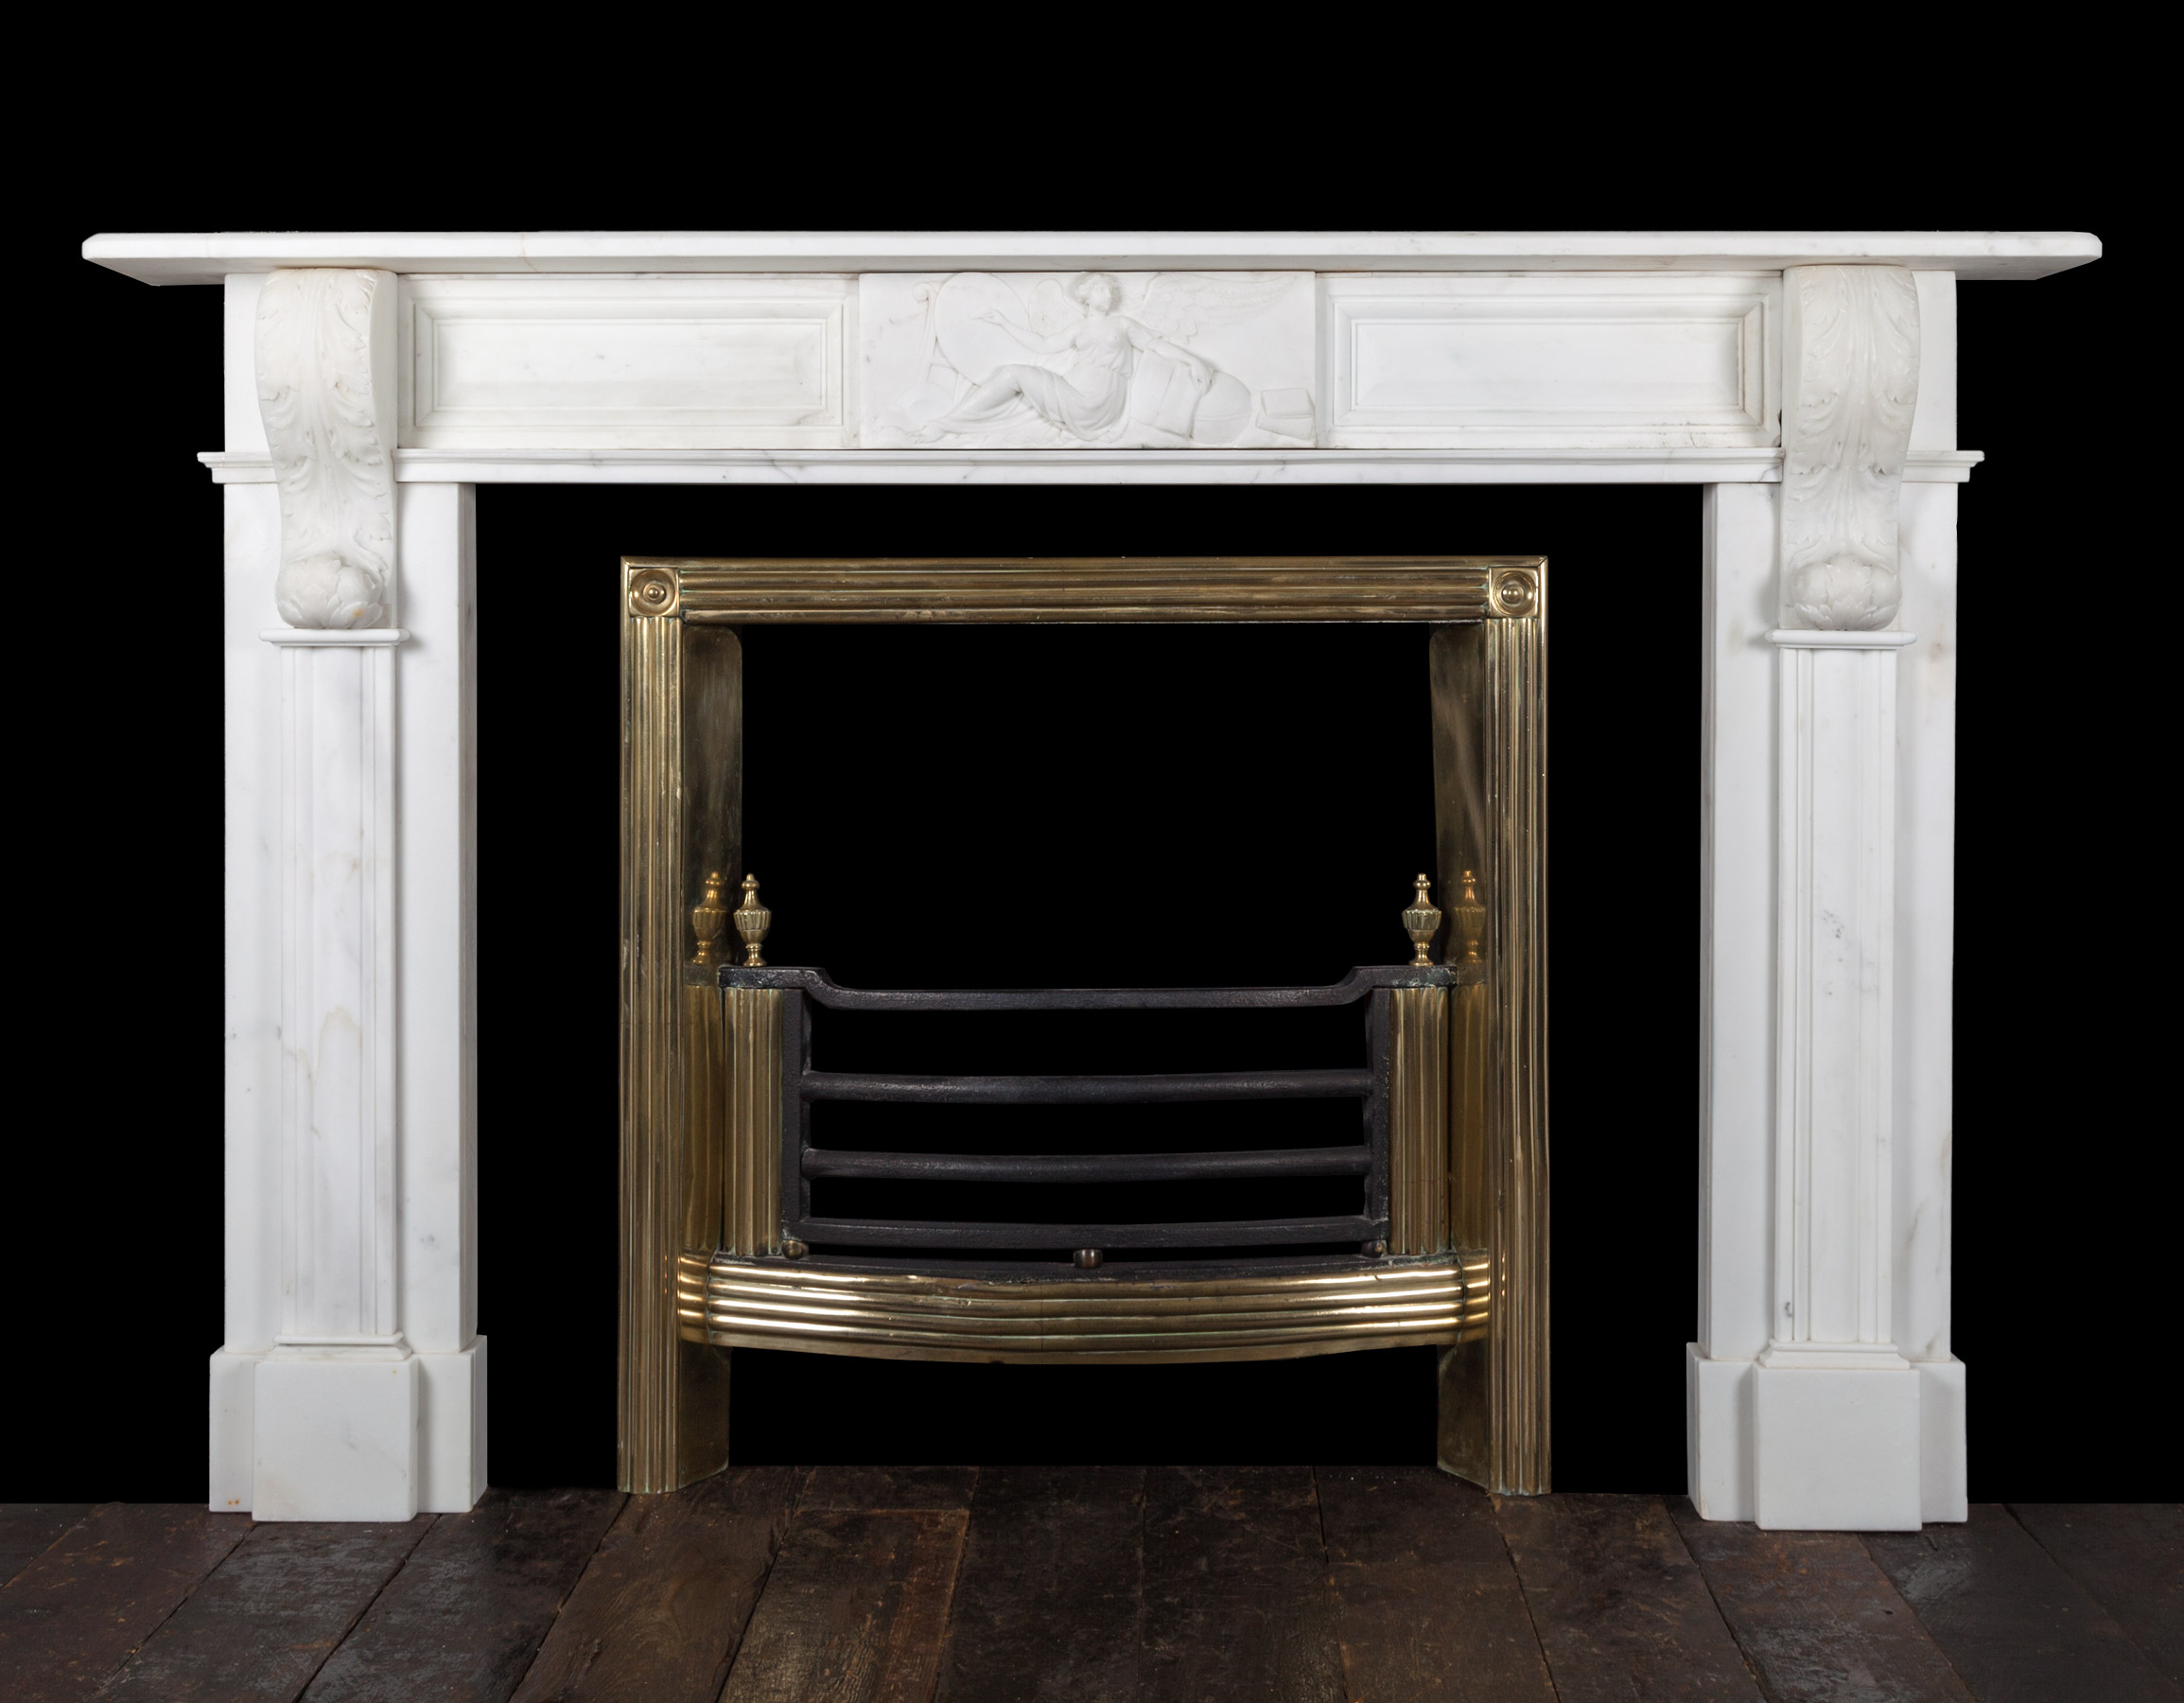 Antique Fireplace – 19284